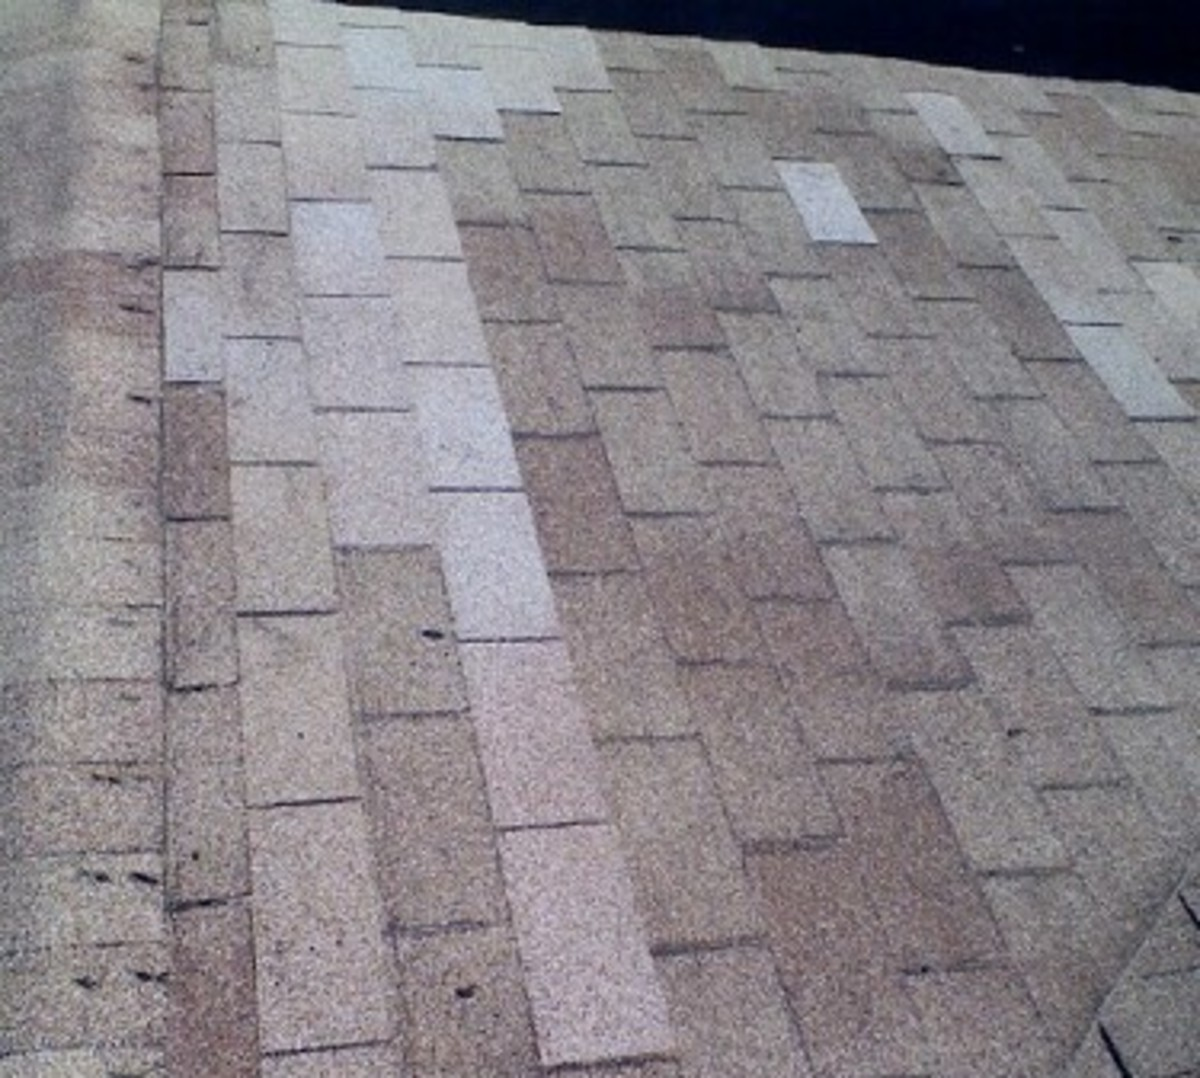 Finished repair job.  The new shingles are slightly lighter in color, not being weathered yet, but it is not objectionable.